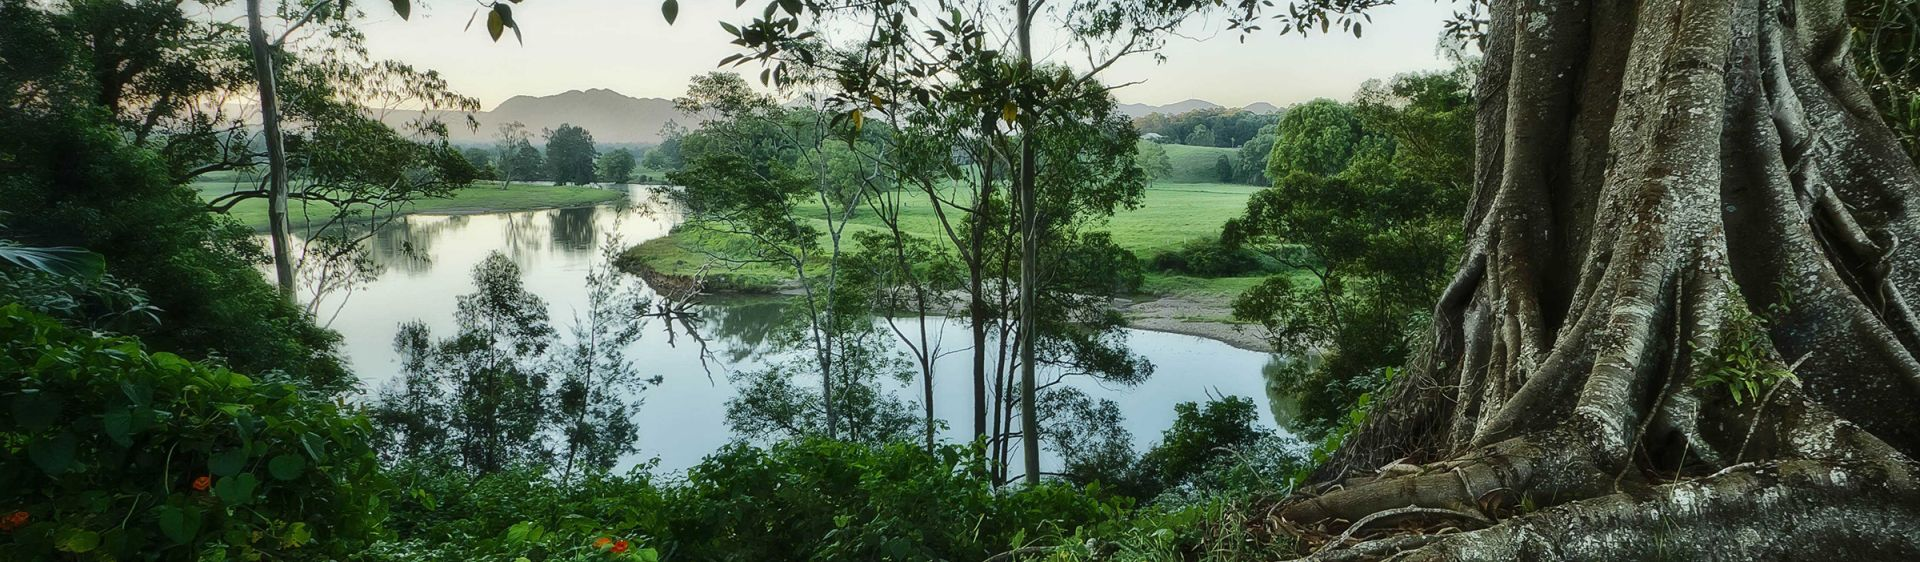 The Bellinger River meanders past farms and bush in Bellingen, NSW, Australia